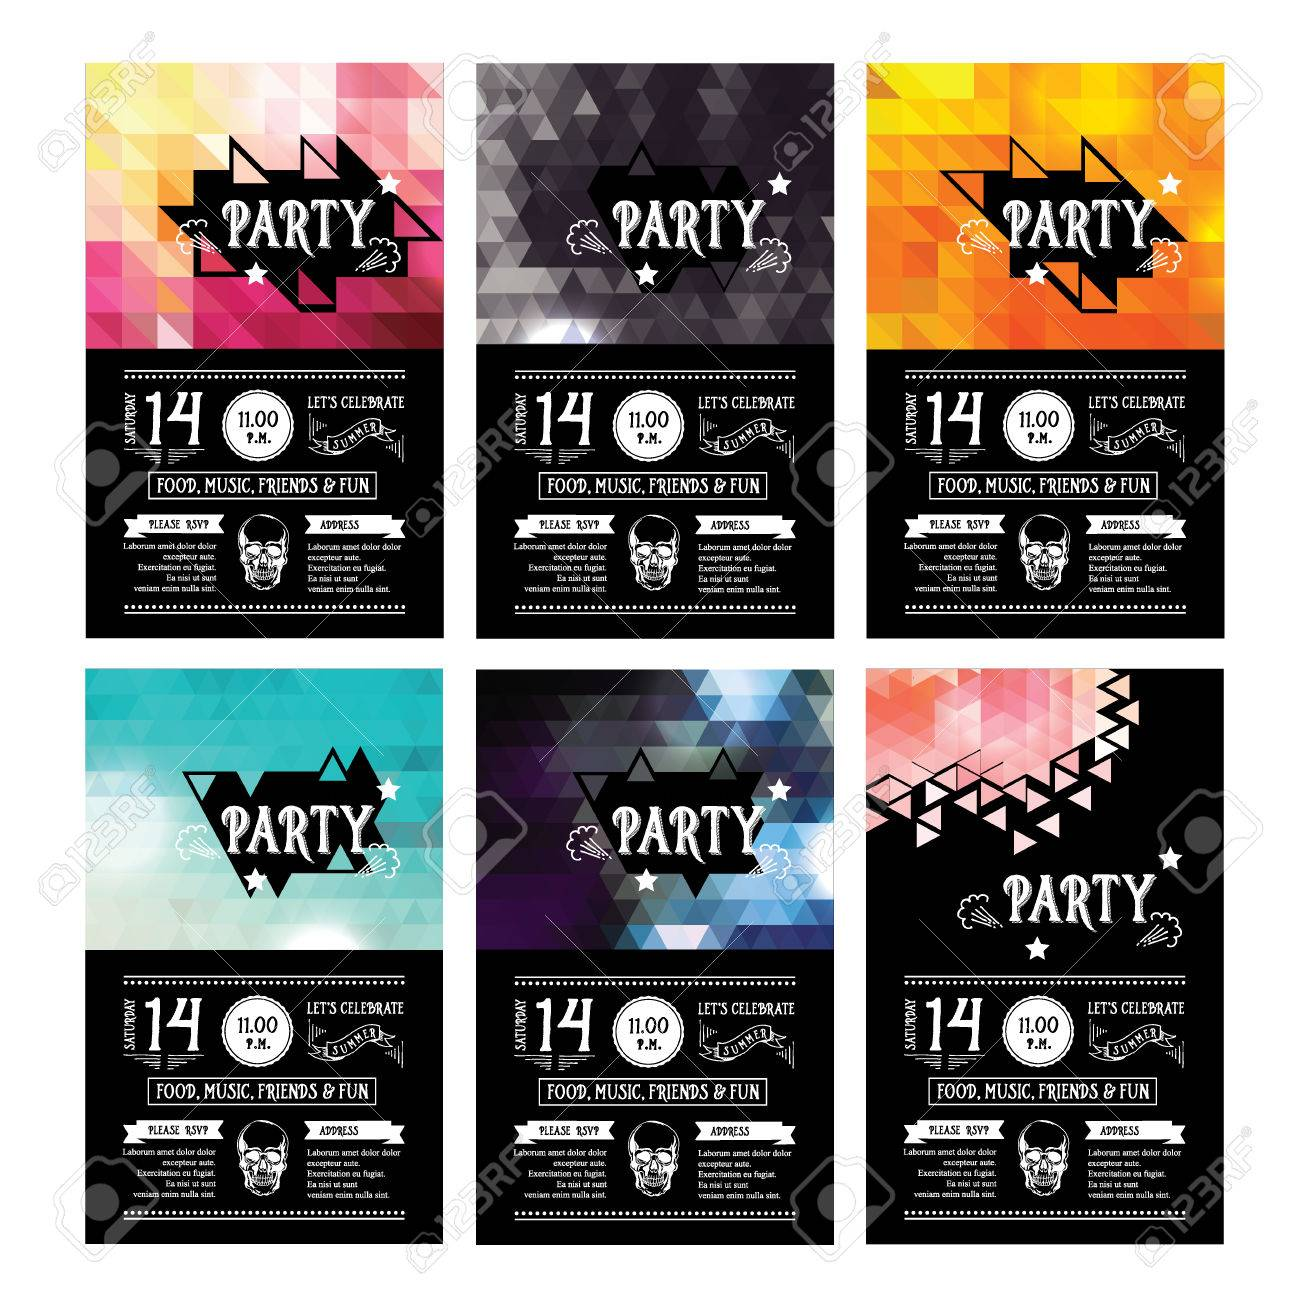 Invitation Party Flyer Typography Design Set Royalty Free – Party Invitation Flyer